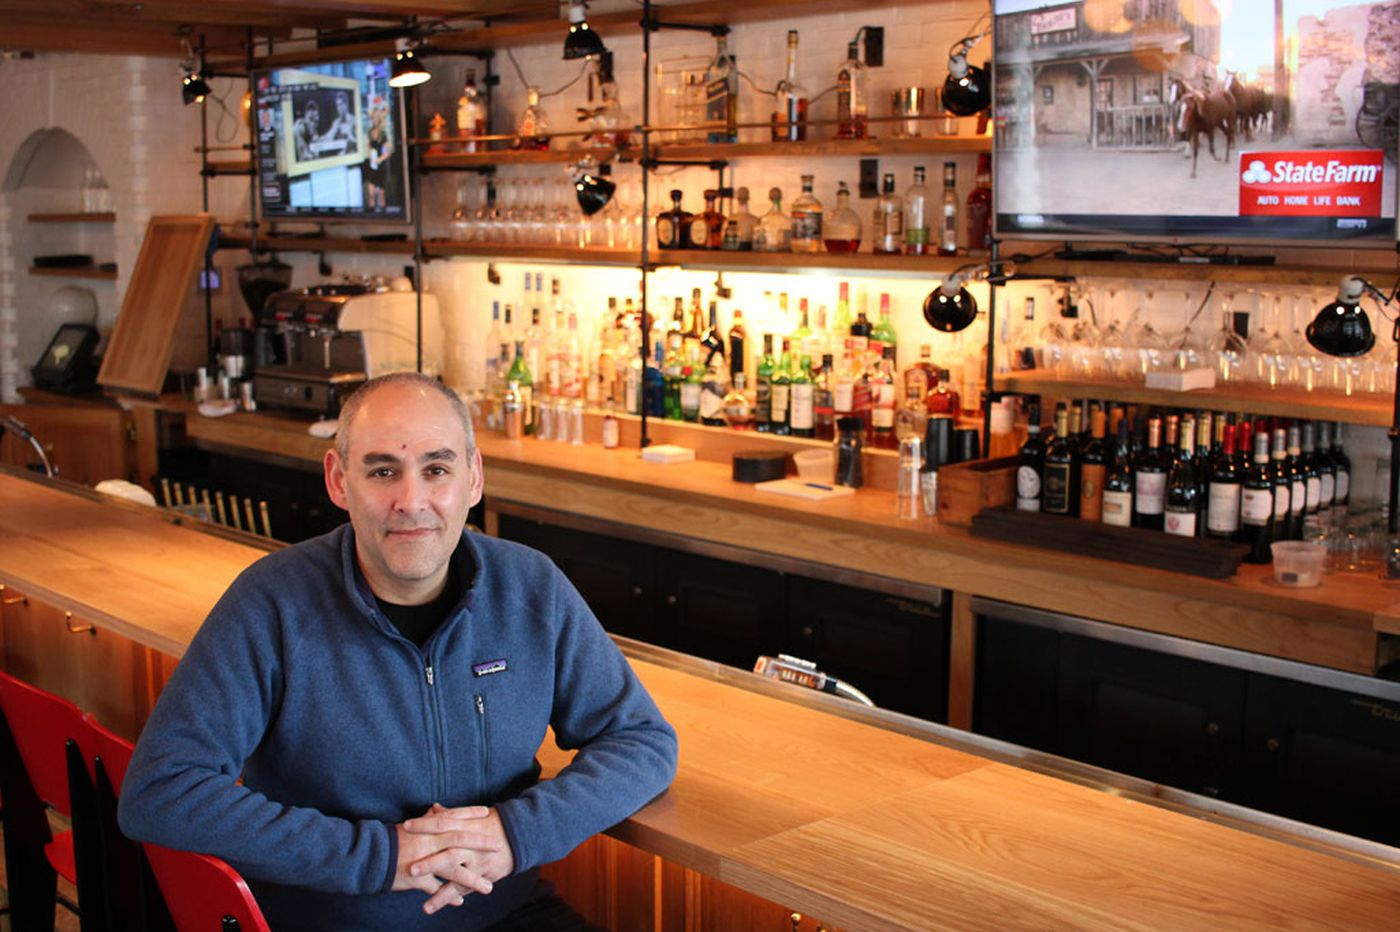 Philly restaurant scene hummed above national rates until the pandemic chased away the customers